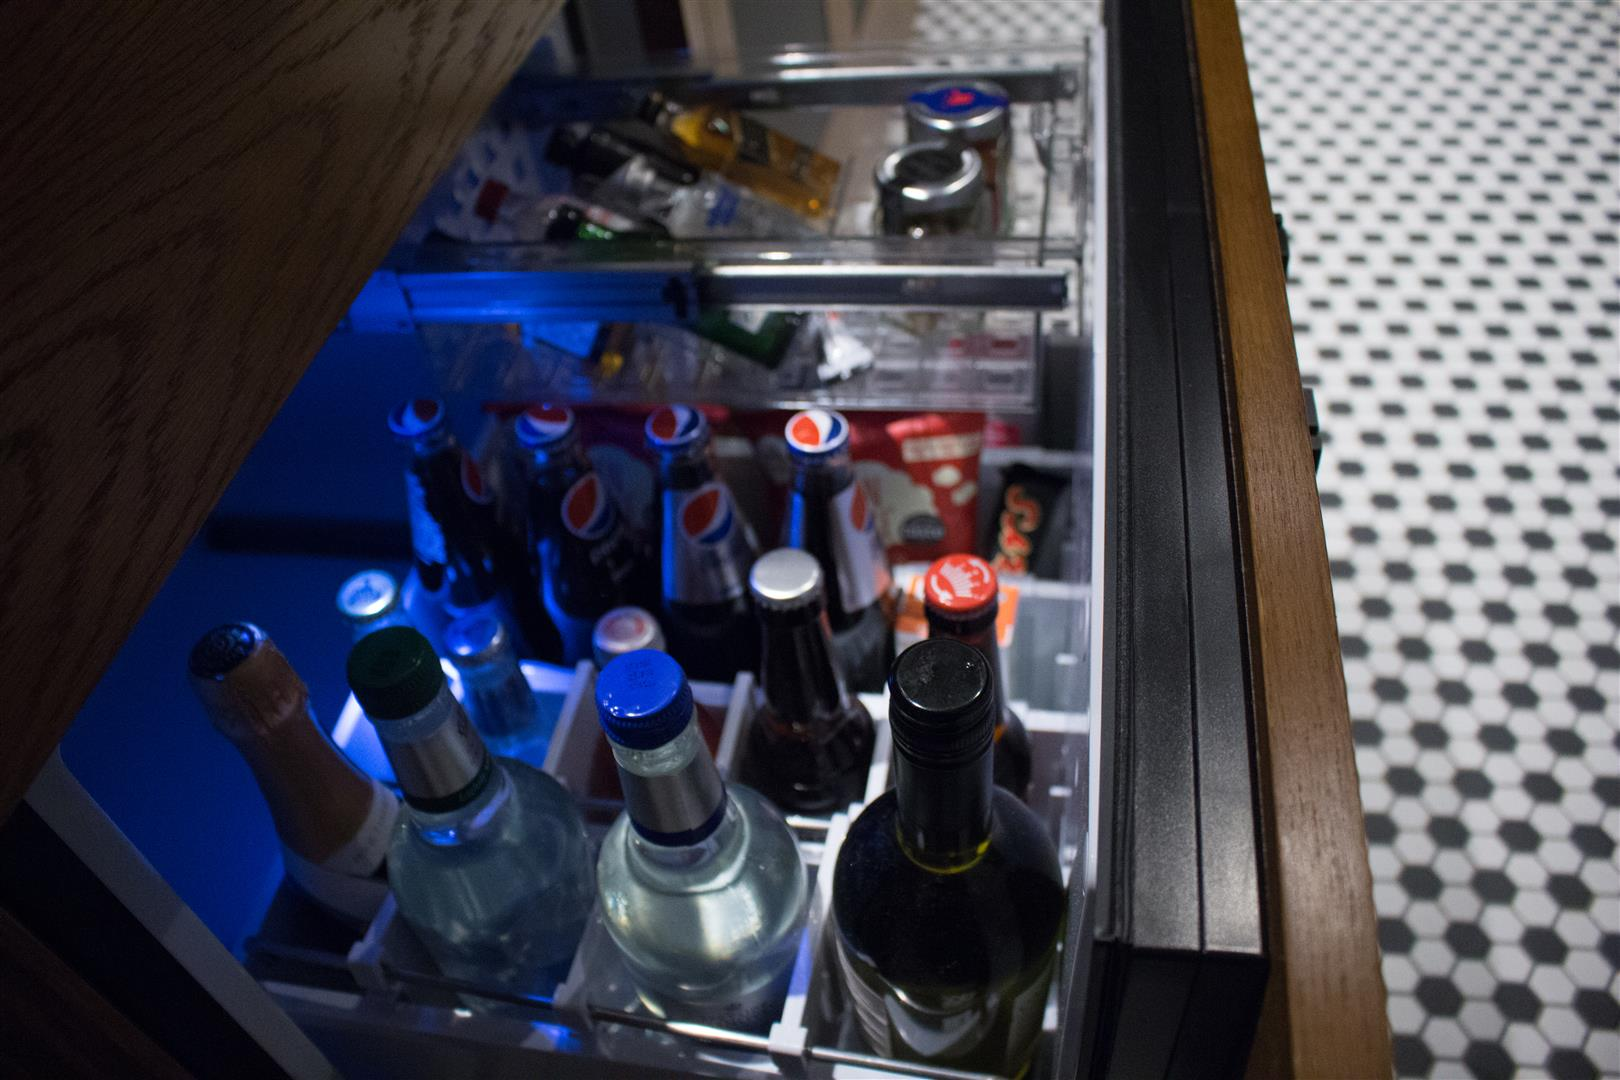 Next to the closets, you can satisfy most cravings and thirsts!